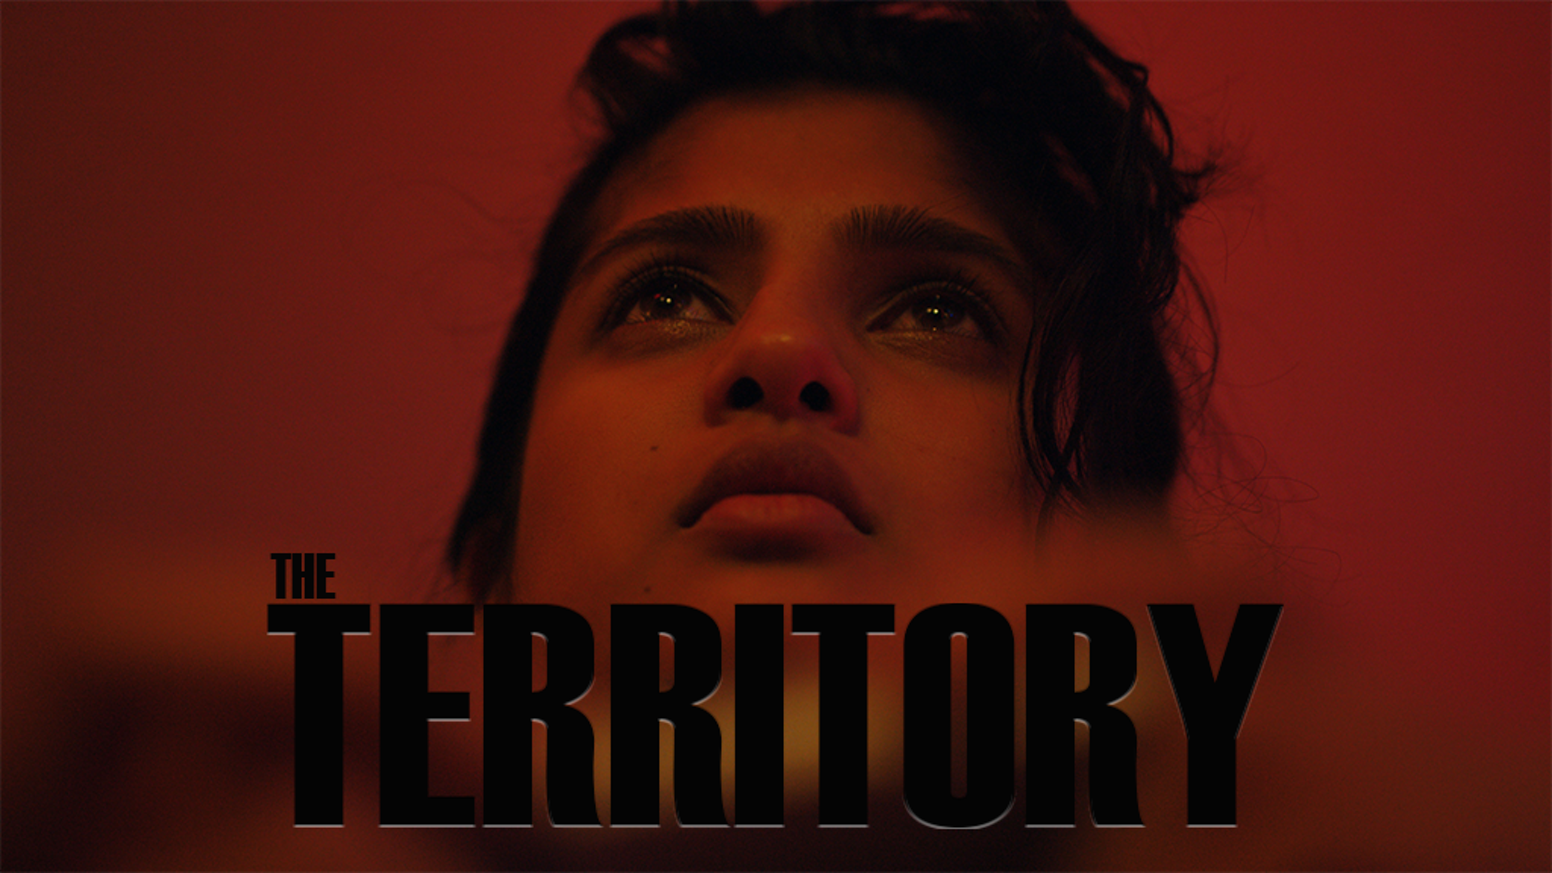 It's time to take THE TERRITORY, the longest running showcase of independent film on PBS, to the next level, and WE DID IT!  Thanks to all of our supporters.